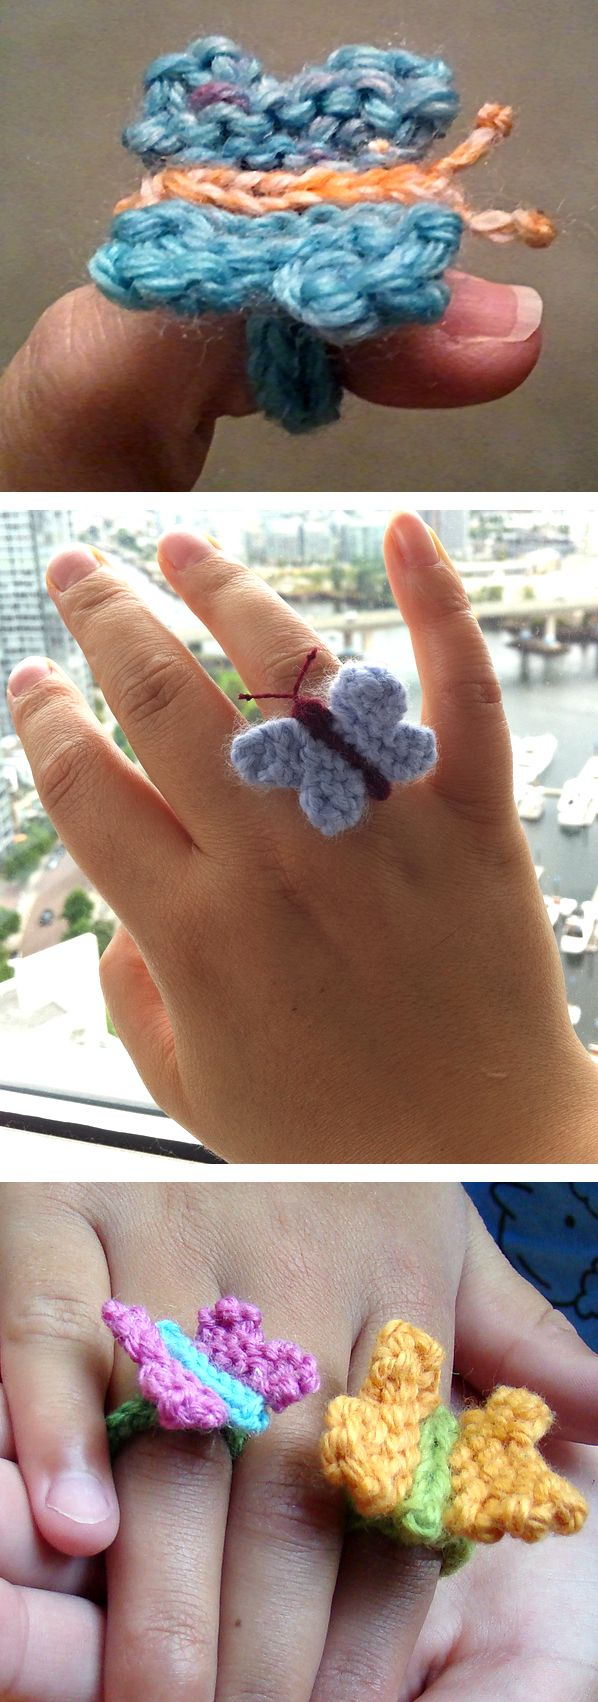 Free Knitting Pattern for Easy Butterfly Ring - A tiny butterfly about 1 inch in size adorns an i-cord ring. Designed by Susan B. Anderson. Rated easy by most Ravelrers. Pictured projects bysumaq and knittingwithwords.